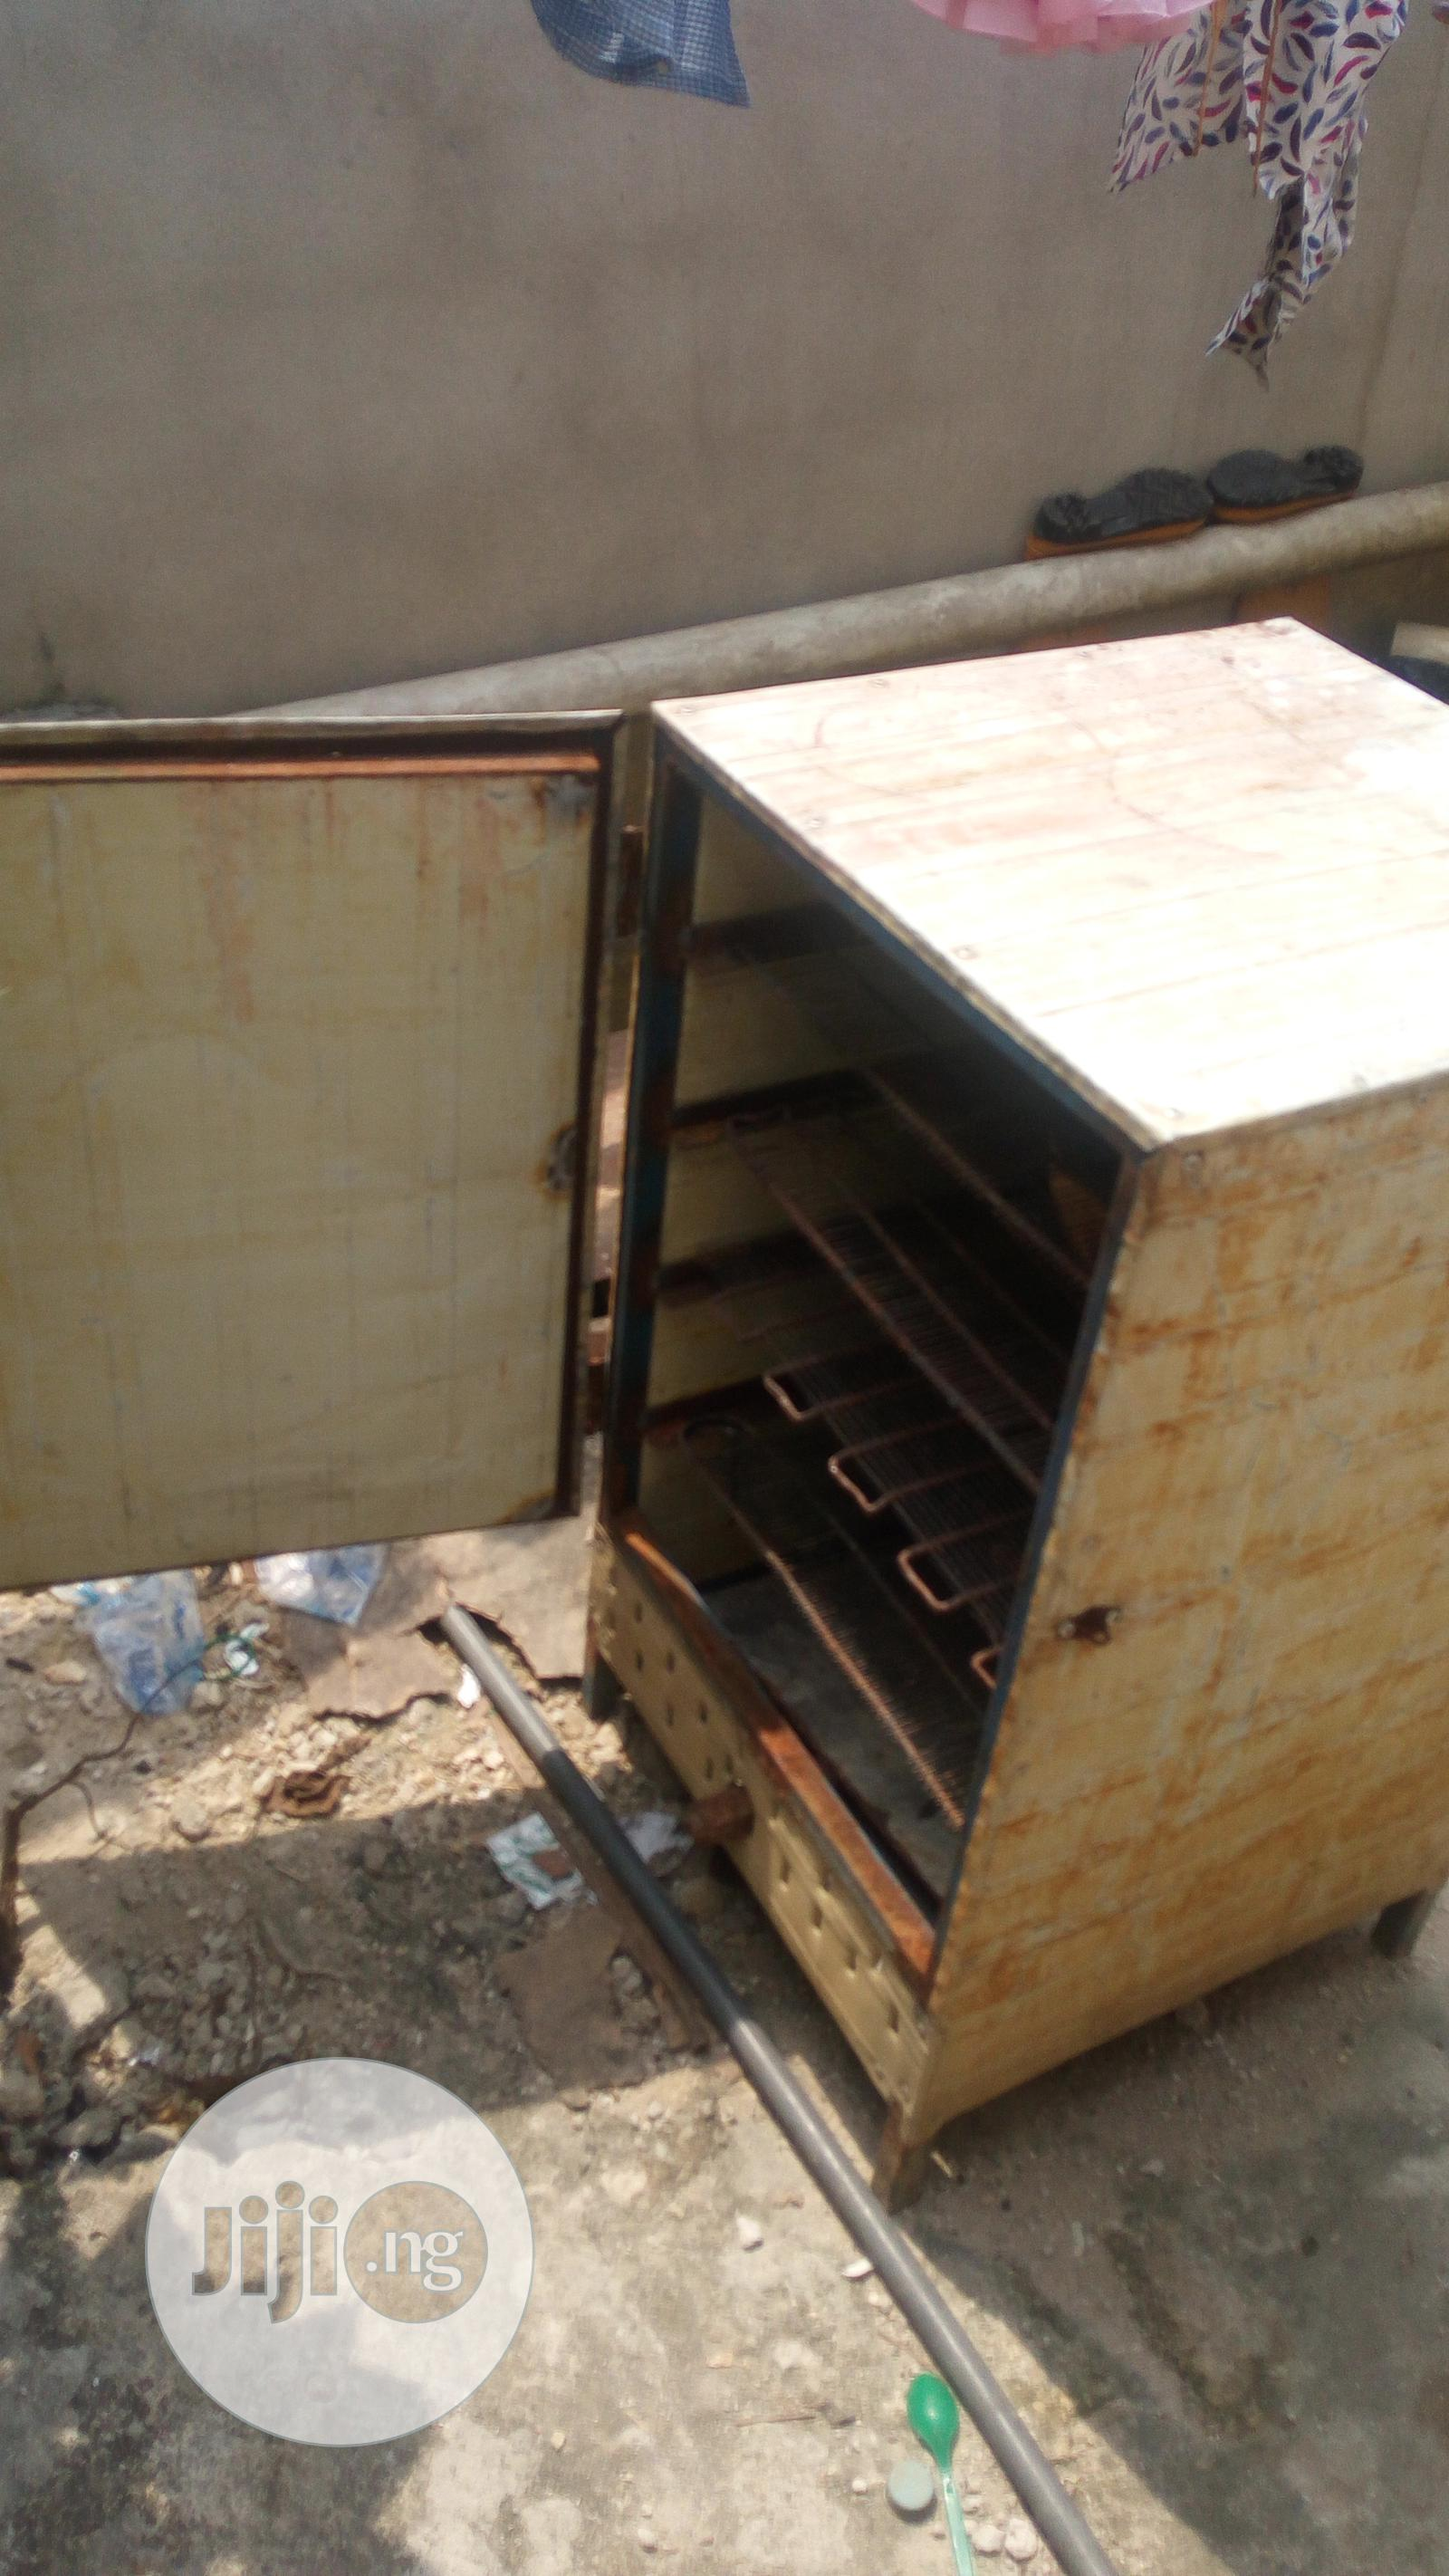 Commercial Oven For Sale | Restaurant & Catering Equipment for sale in Port-Harcourt, Rivers State, Nigeria